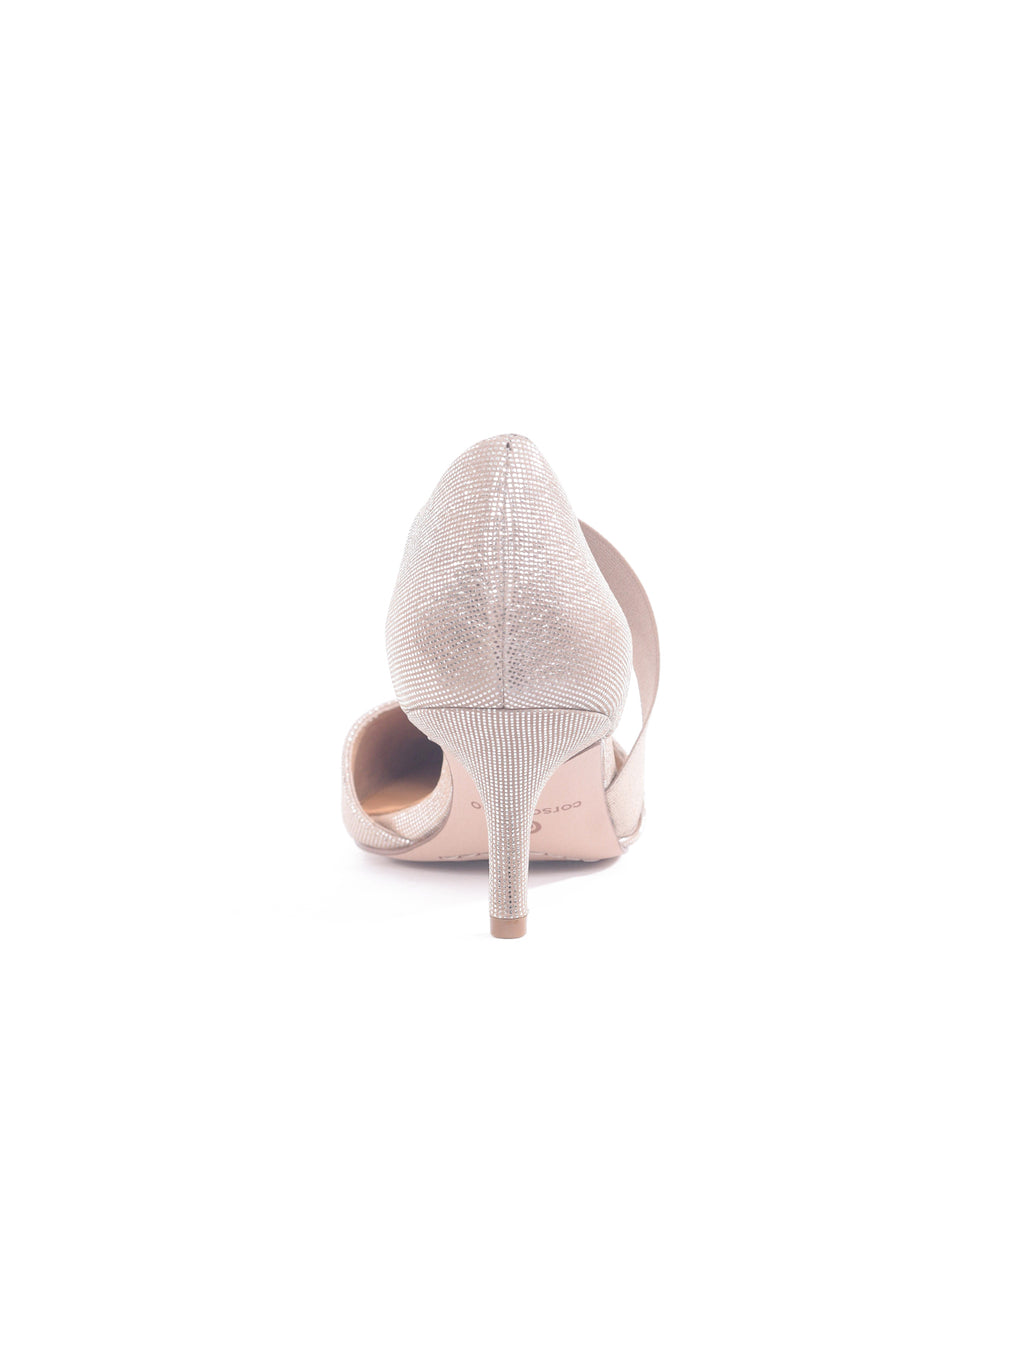 Corso Como Shoes Denice Heels, Champagne